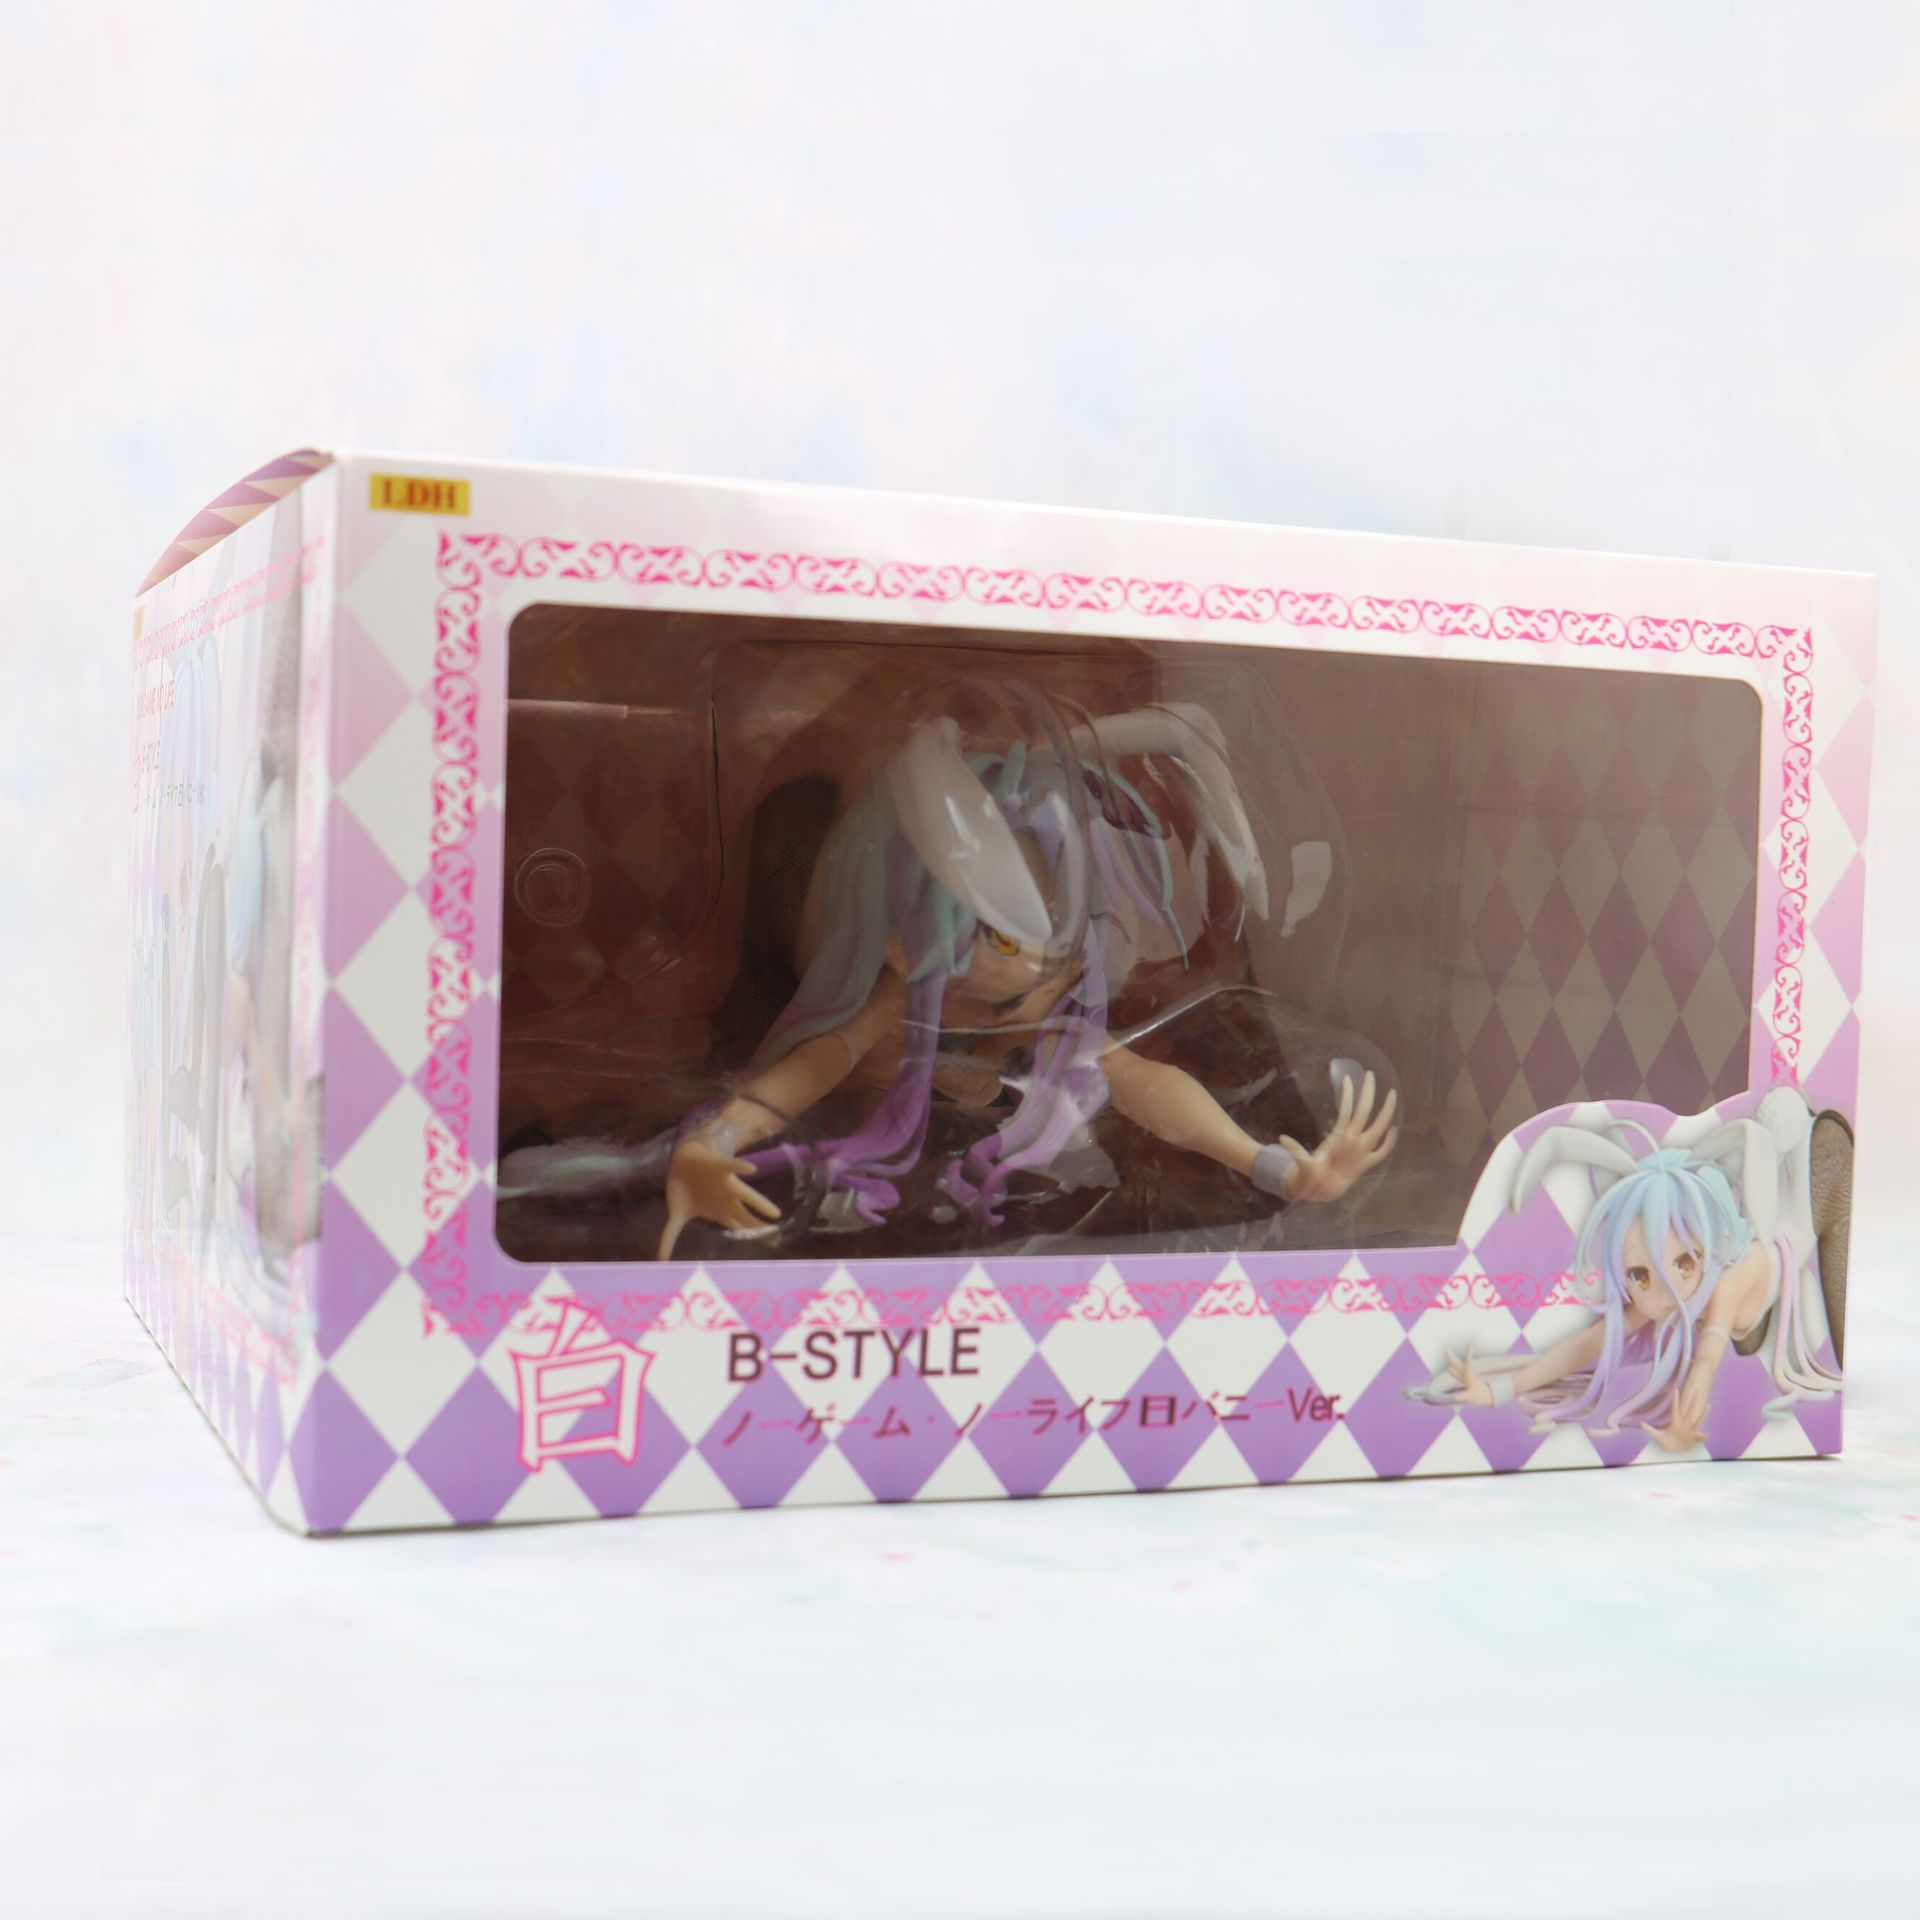 11*24cm Anime No Game No Life Shiro cat Action Figure PVC New Bunny Girl Collection figures toys sexy girl Figure